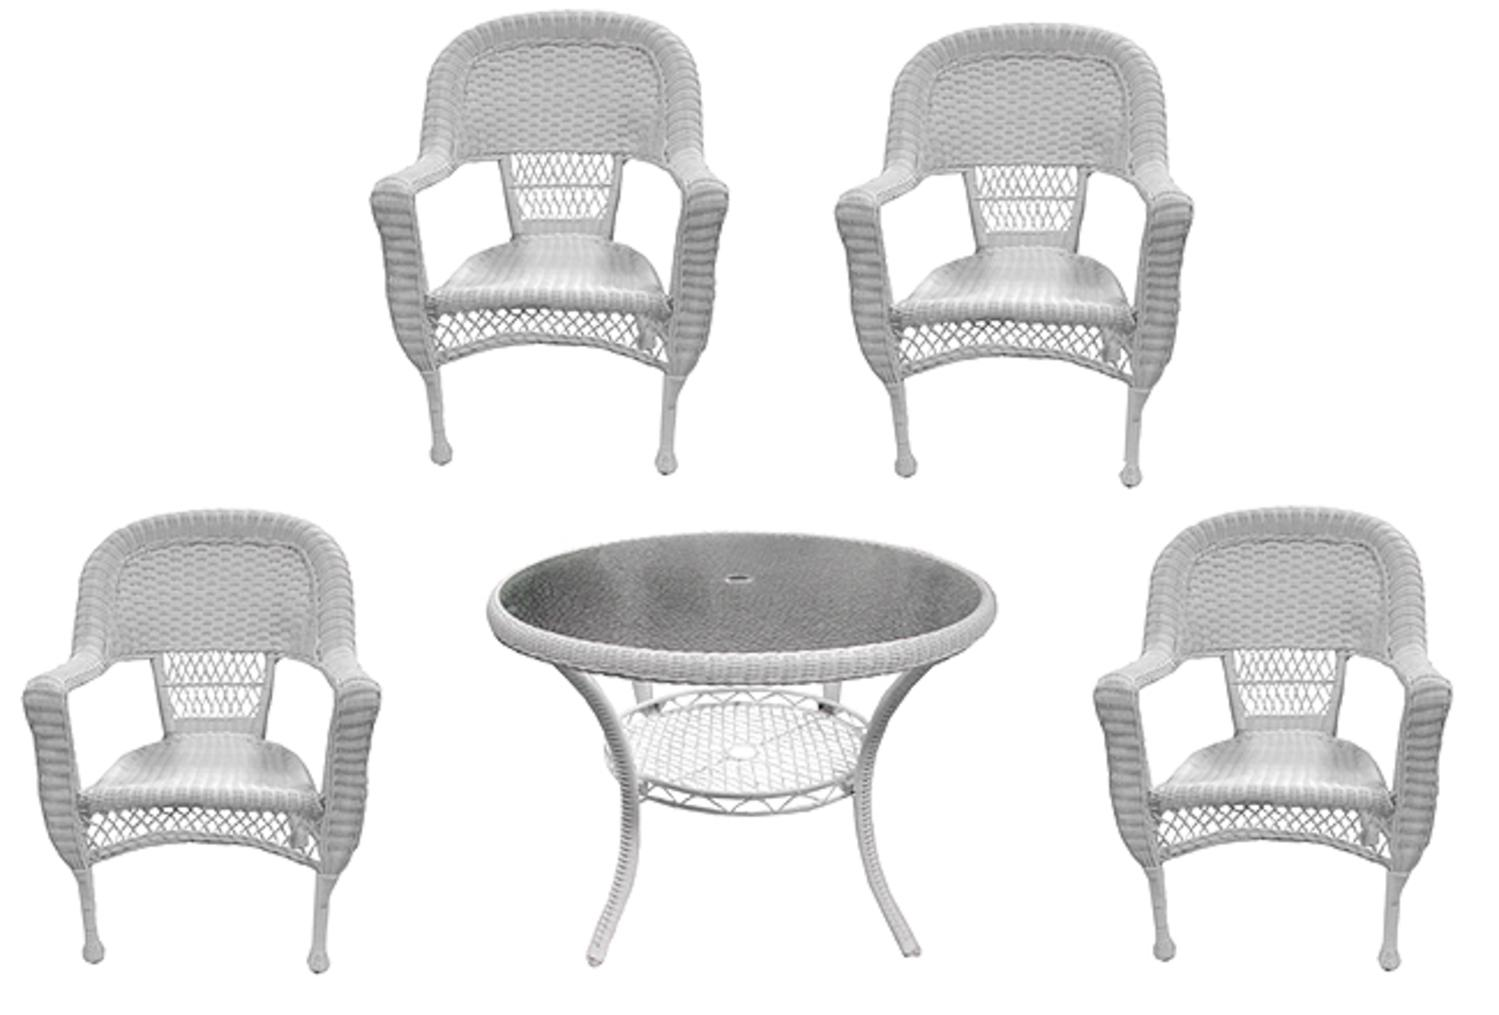 5-Piece White Resin Wicker Patio Dining Room Set Table and 4 Chairs by LB International